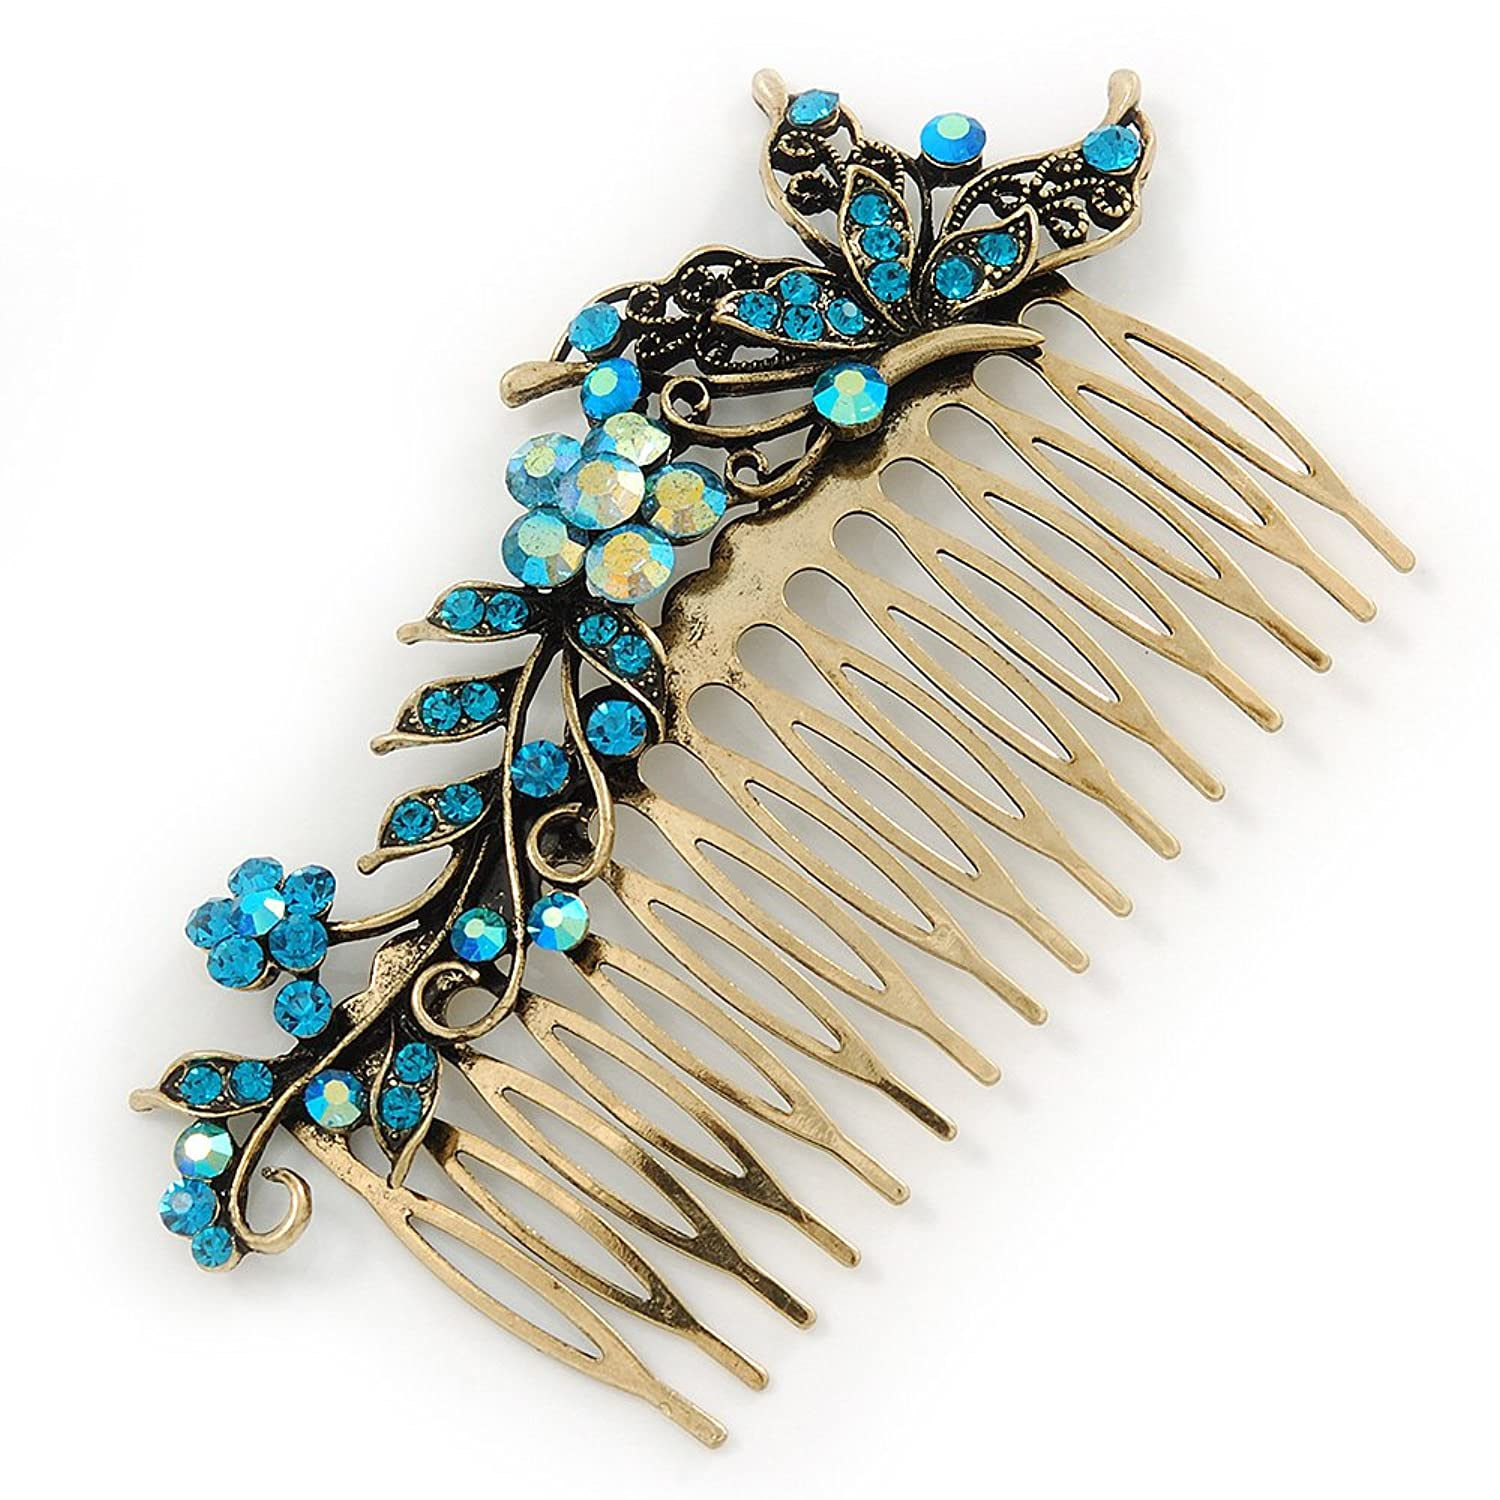 Butterfly hair accessories for weddings uk - Vintage Inspired Teal Blue Swarovski Crystal Flower Butterfly Side Hair Comb In Antique Gold Tone 115mm Amazon Co Uk Jewellery